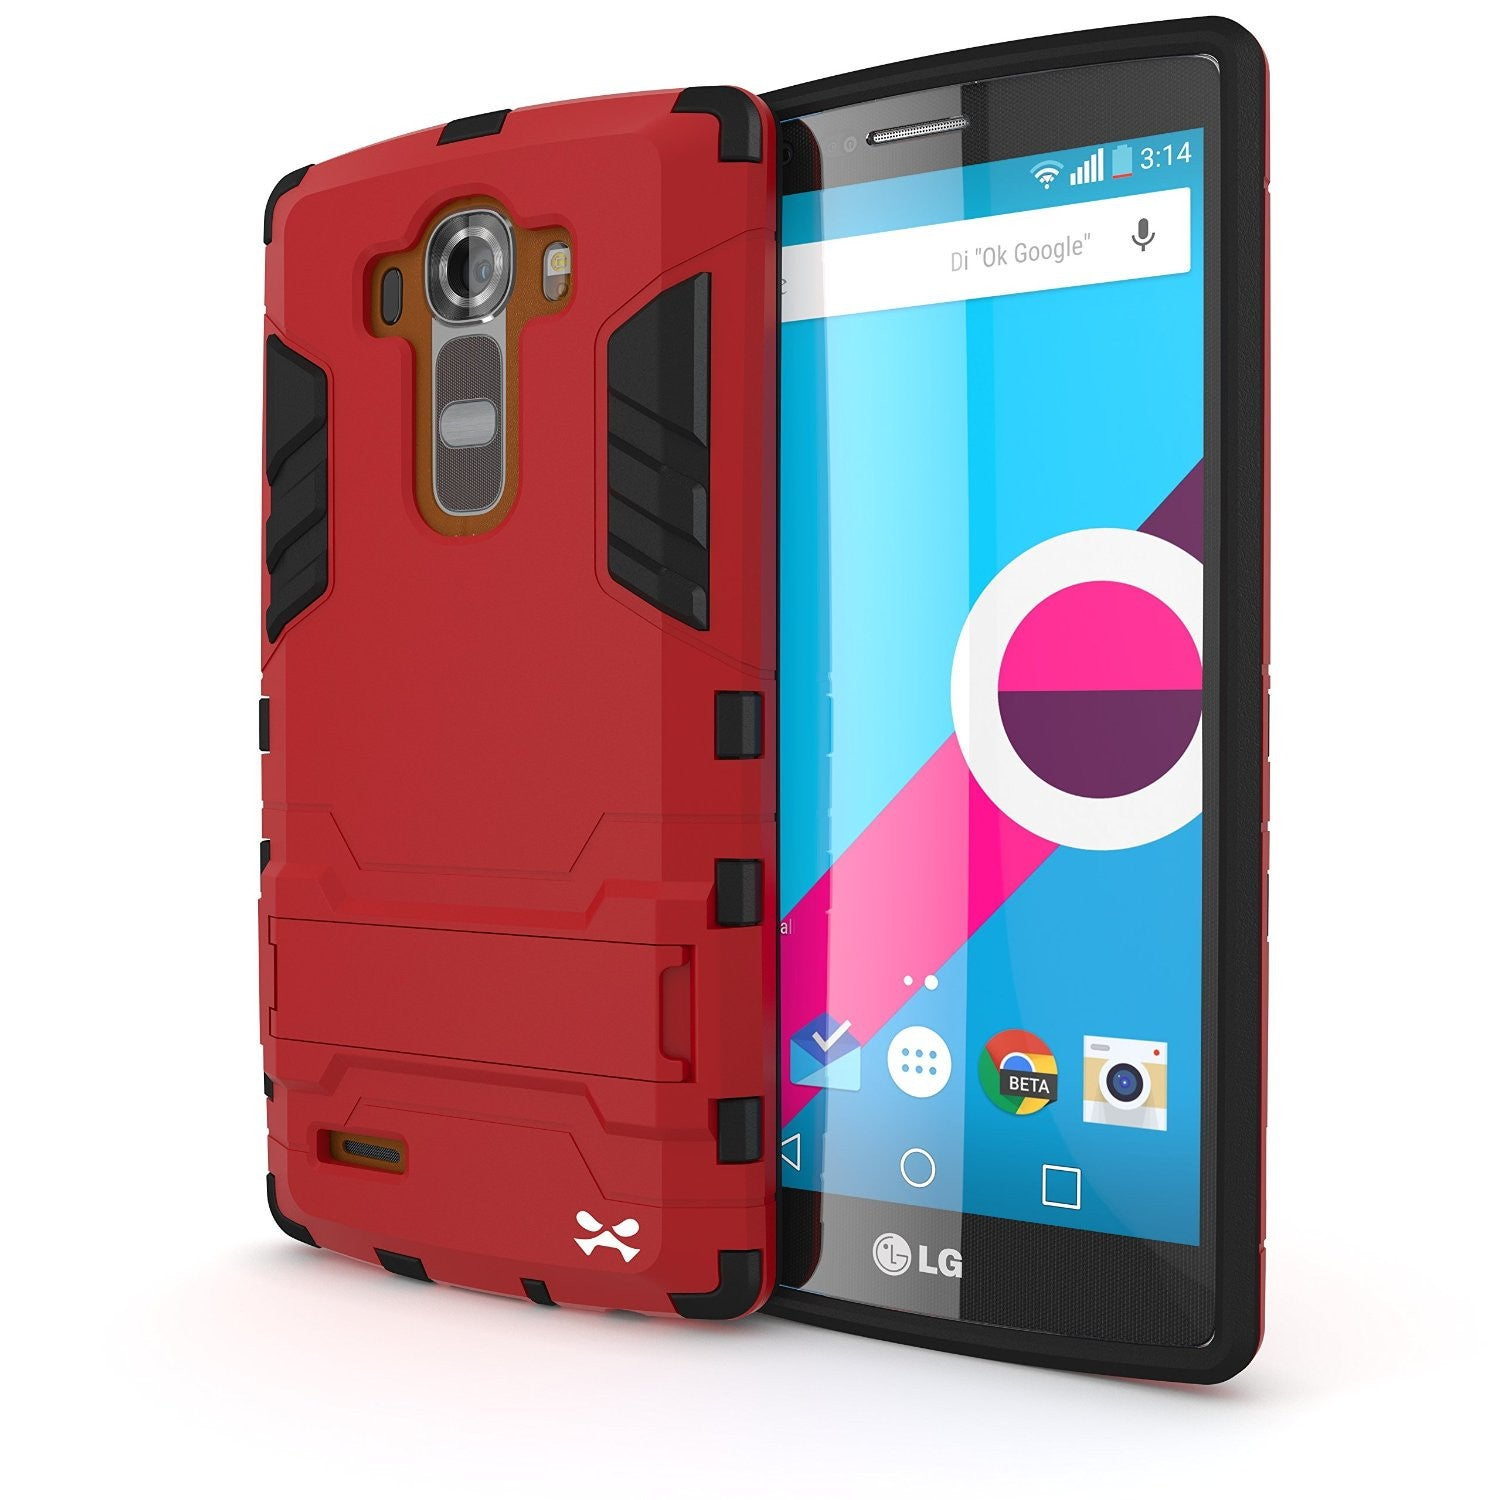 LG G4 Case Ghostek Armadillo 2.0 Red w/ Tempered Glass Screen Protector | Slim Armor | Kickstand